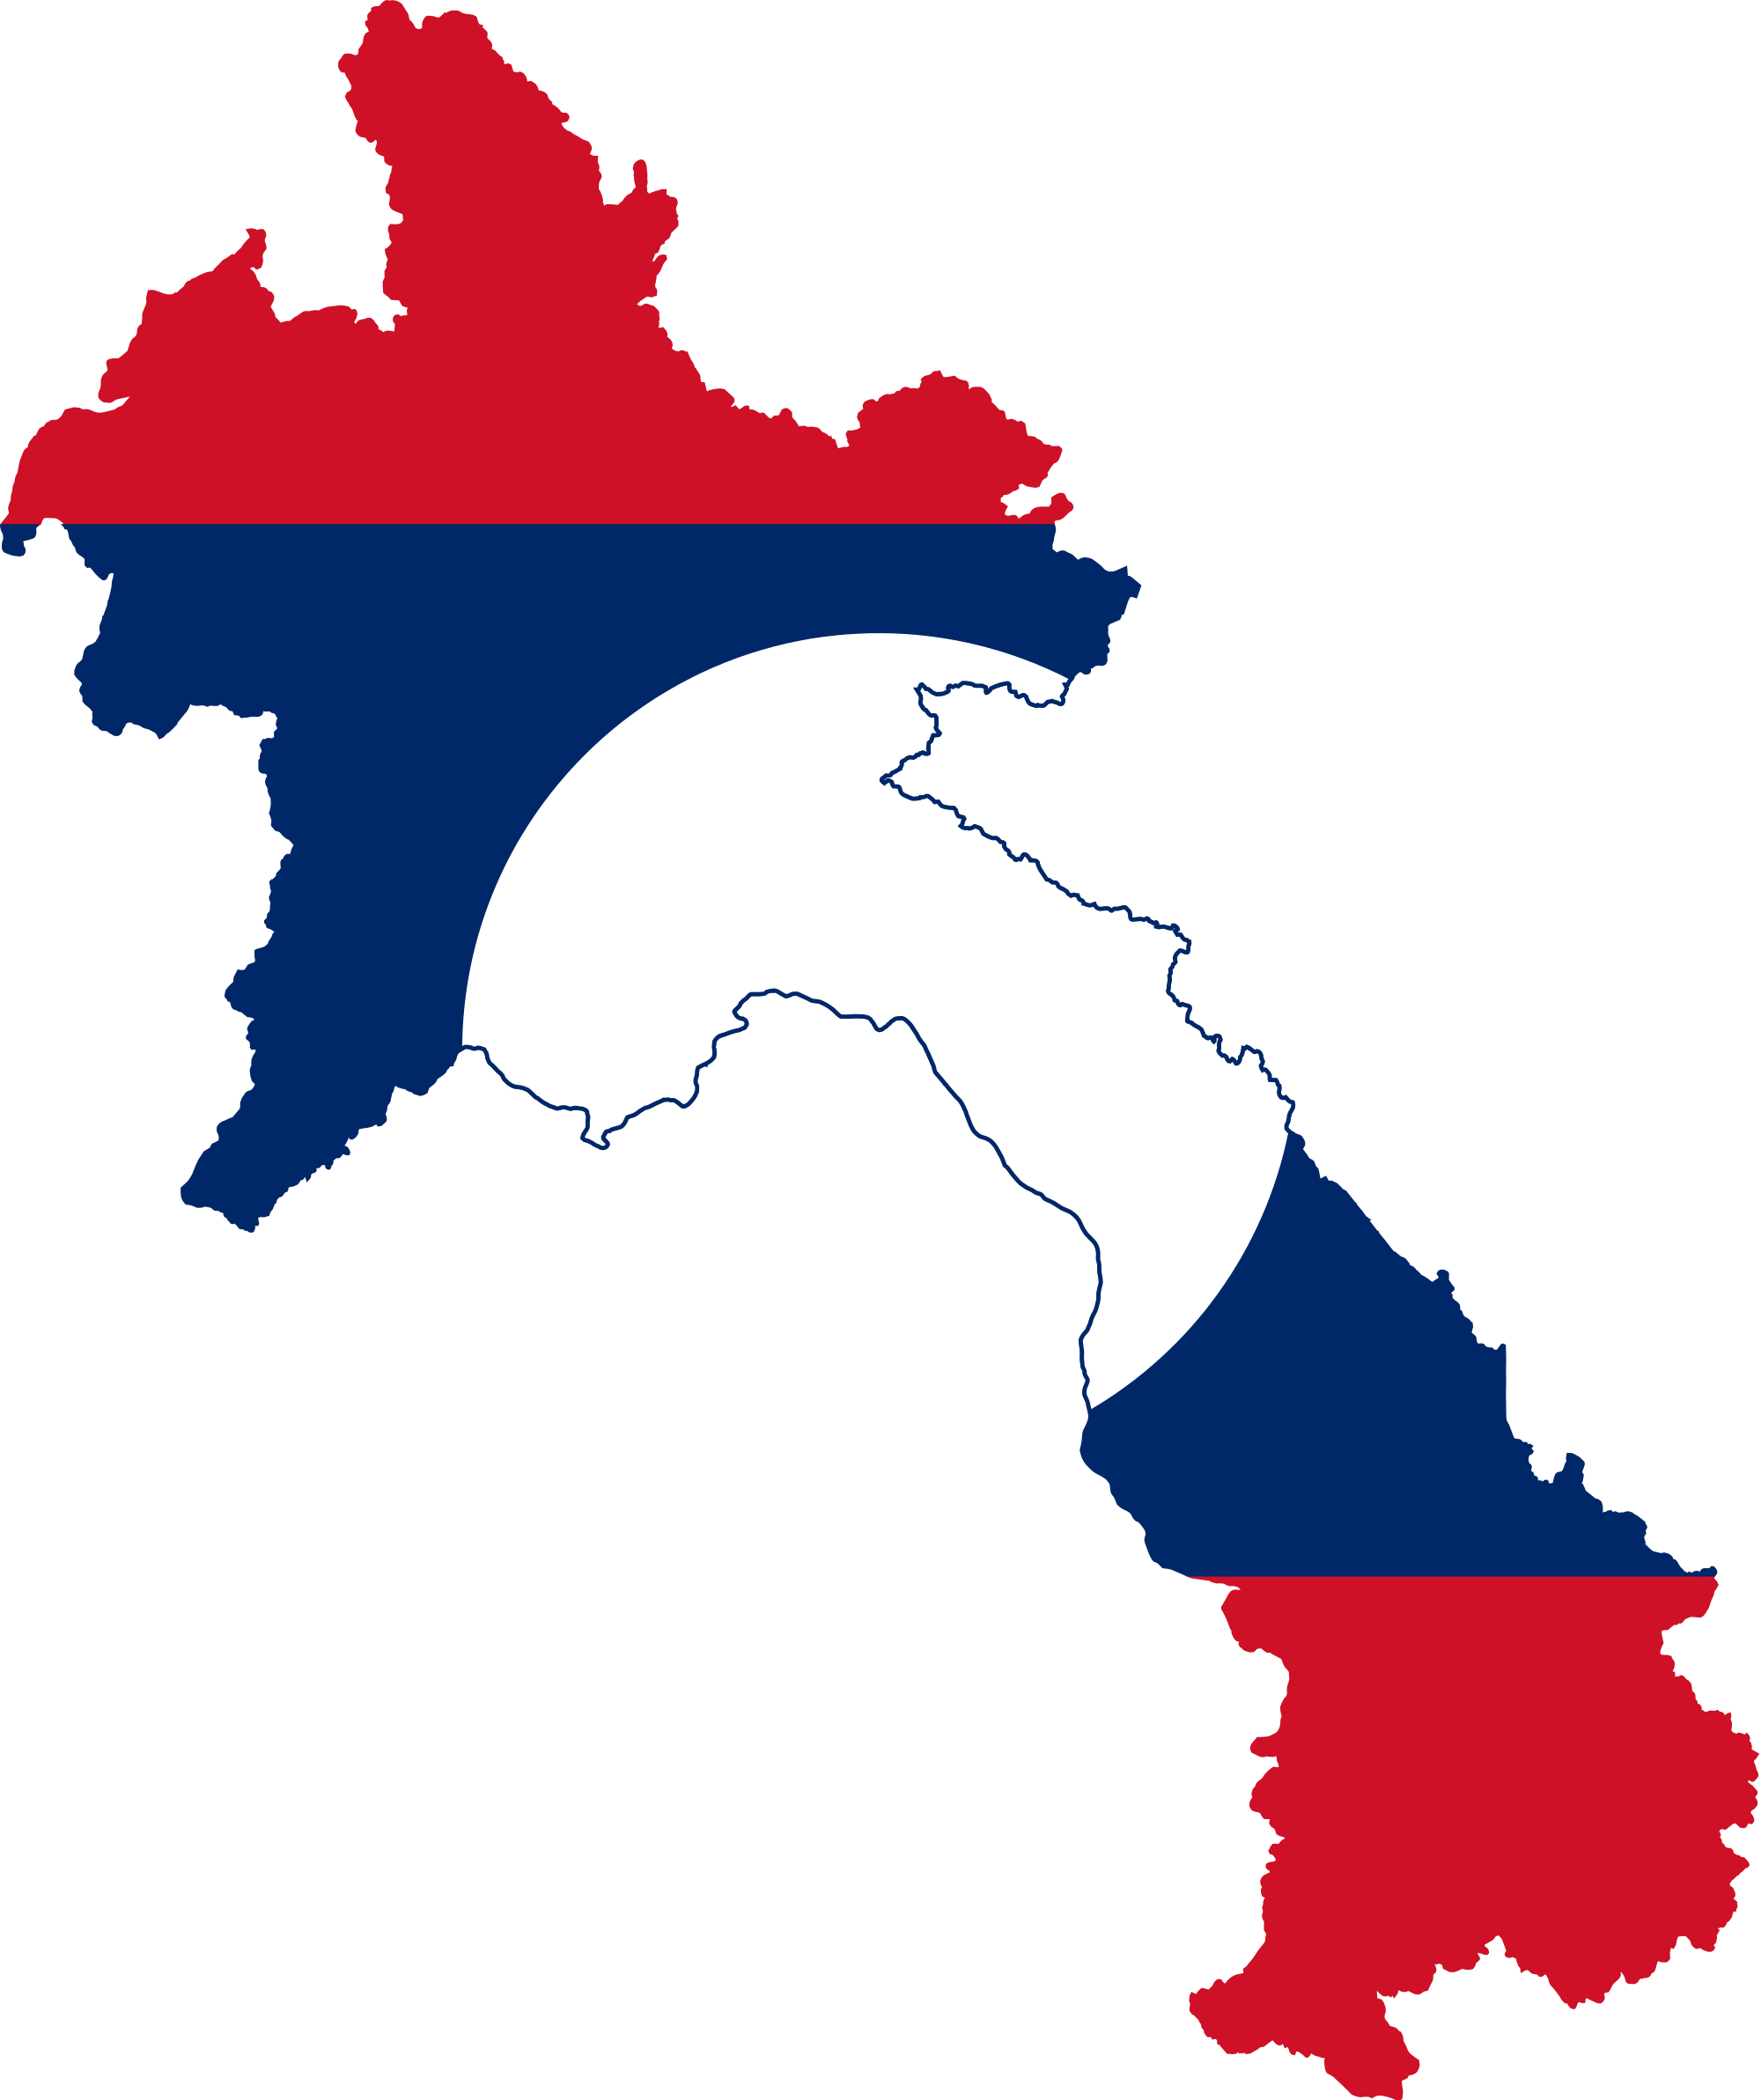 Laos flag png. File map of svg